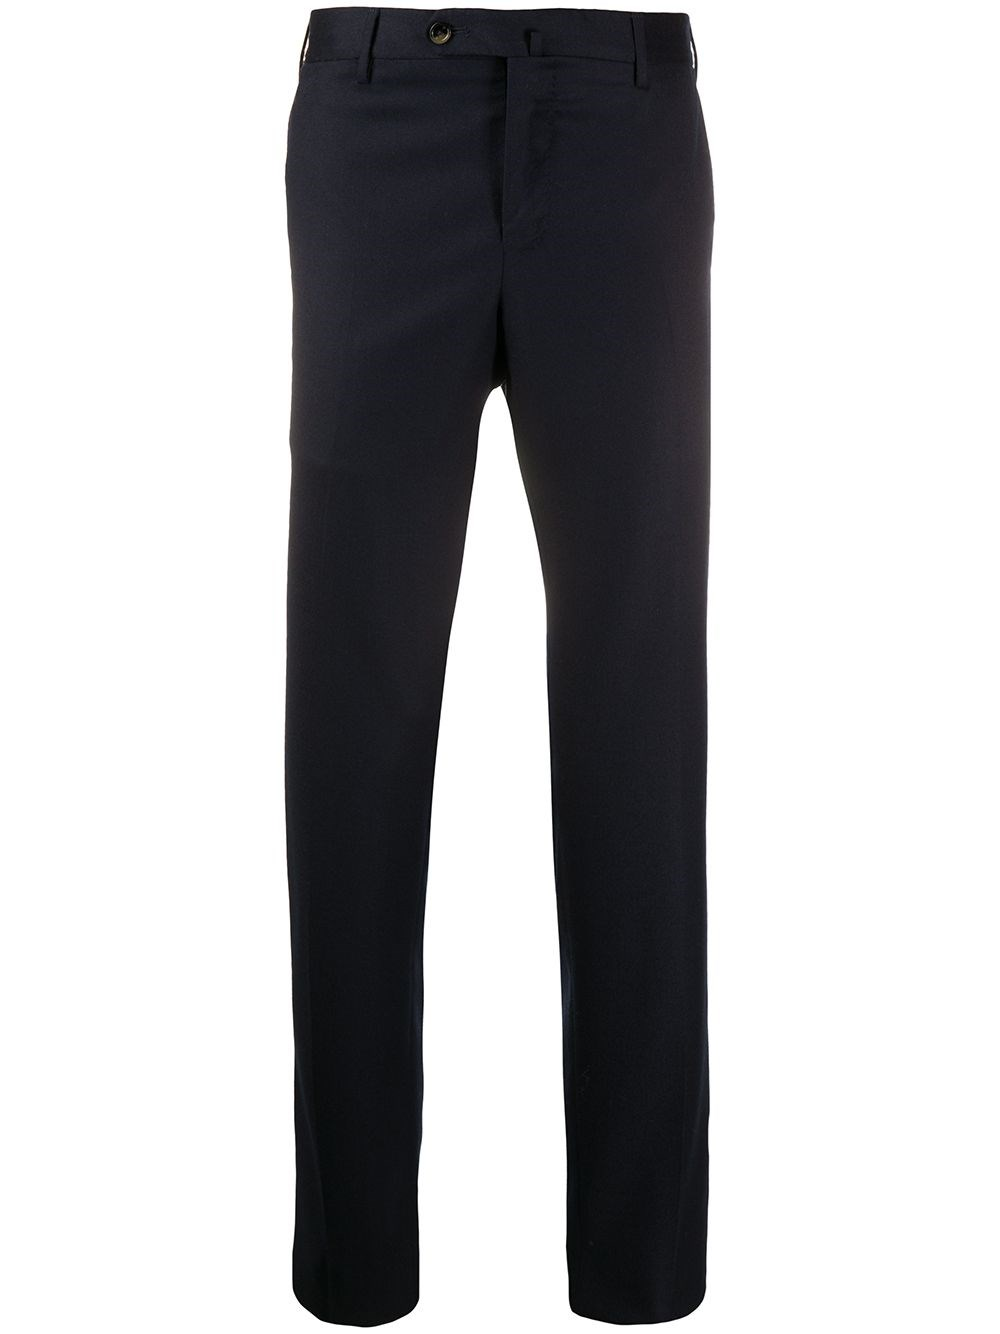 PT TORINO Classic Flannel Trousers